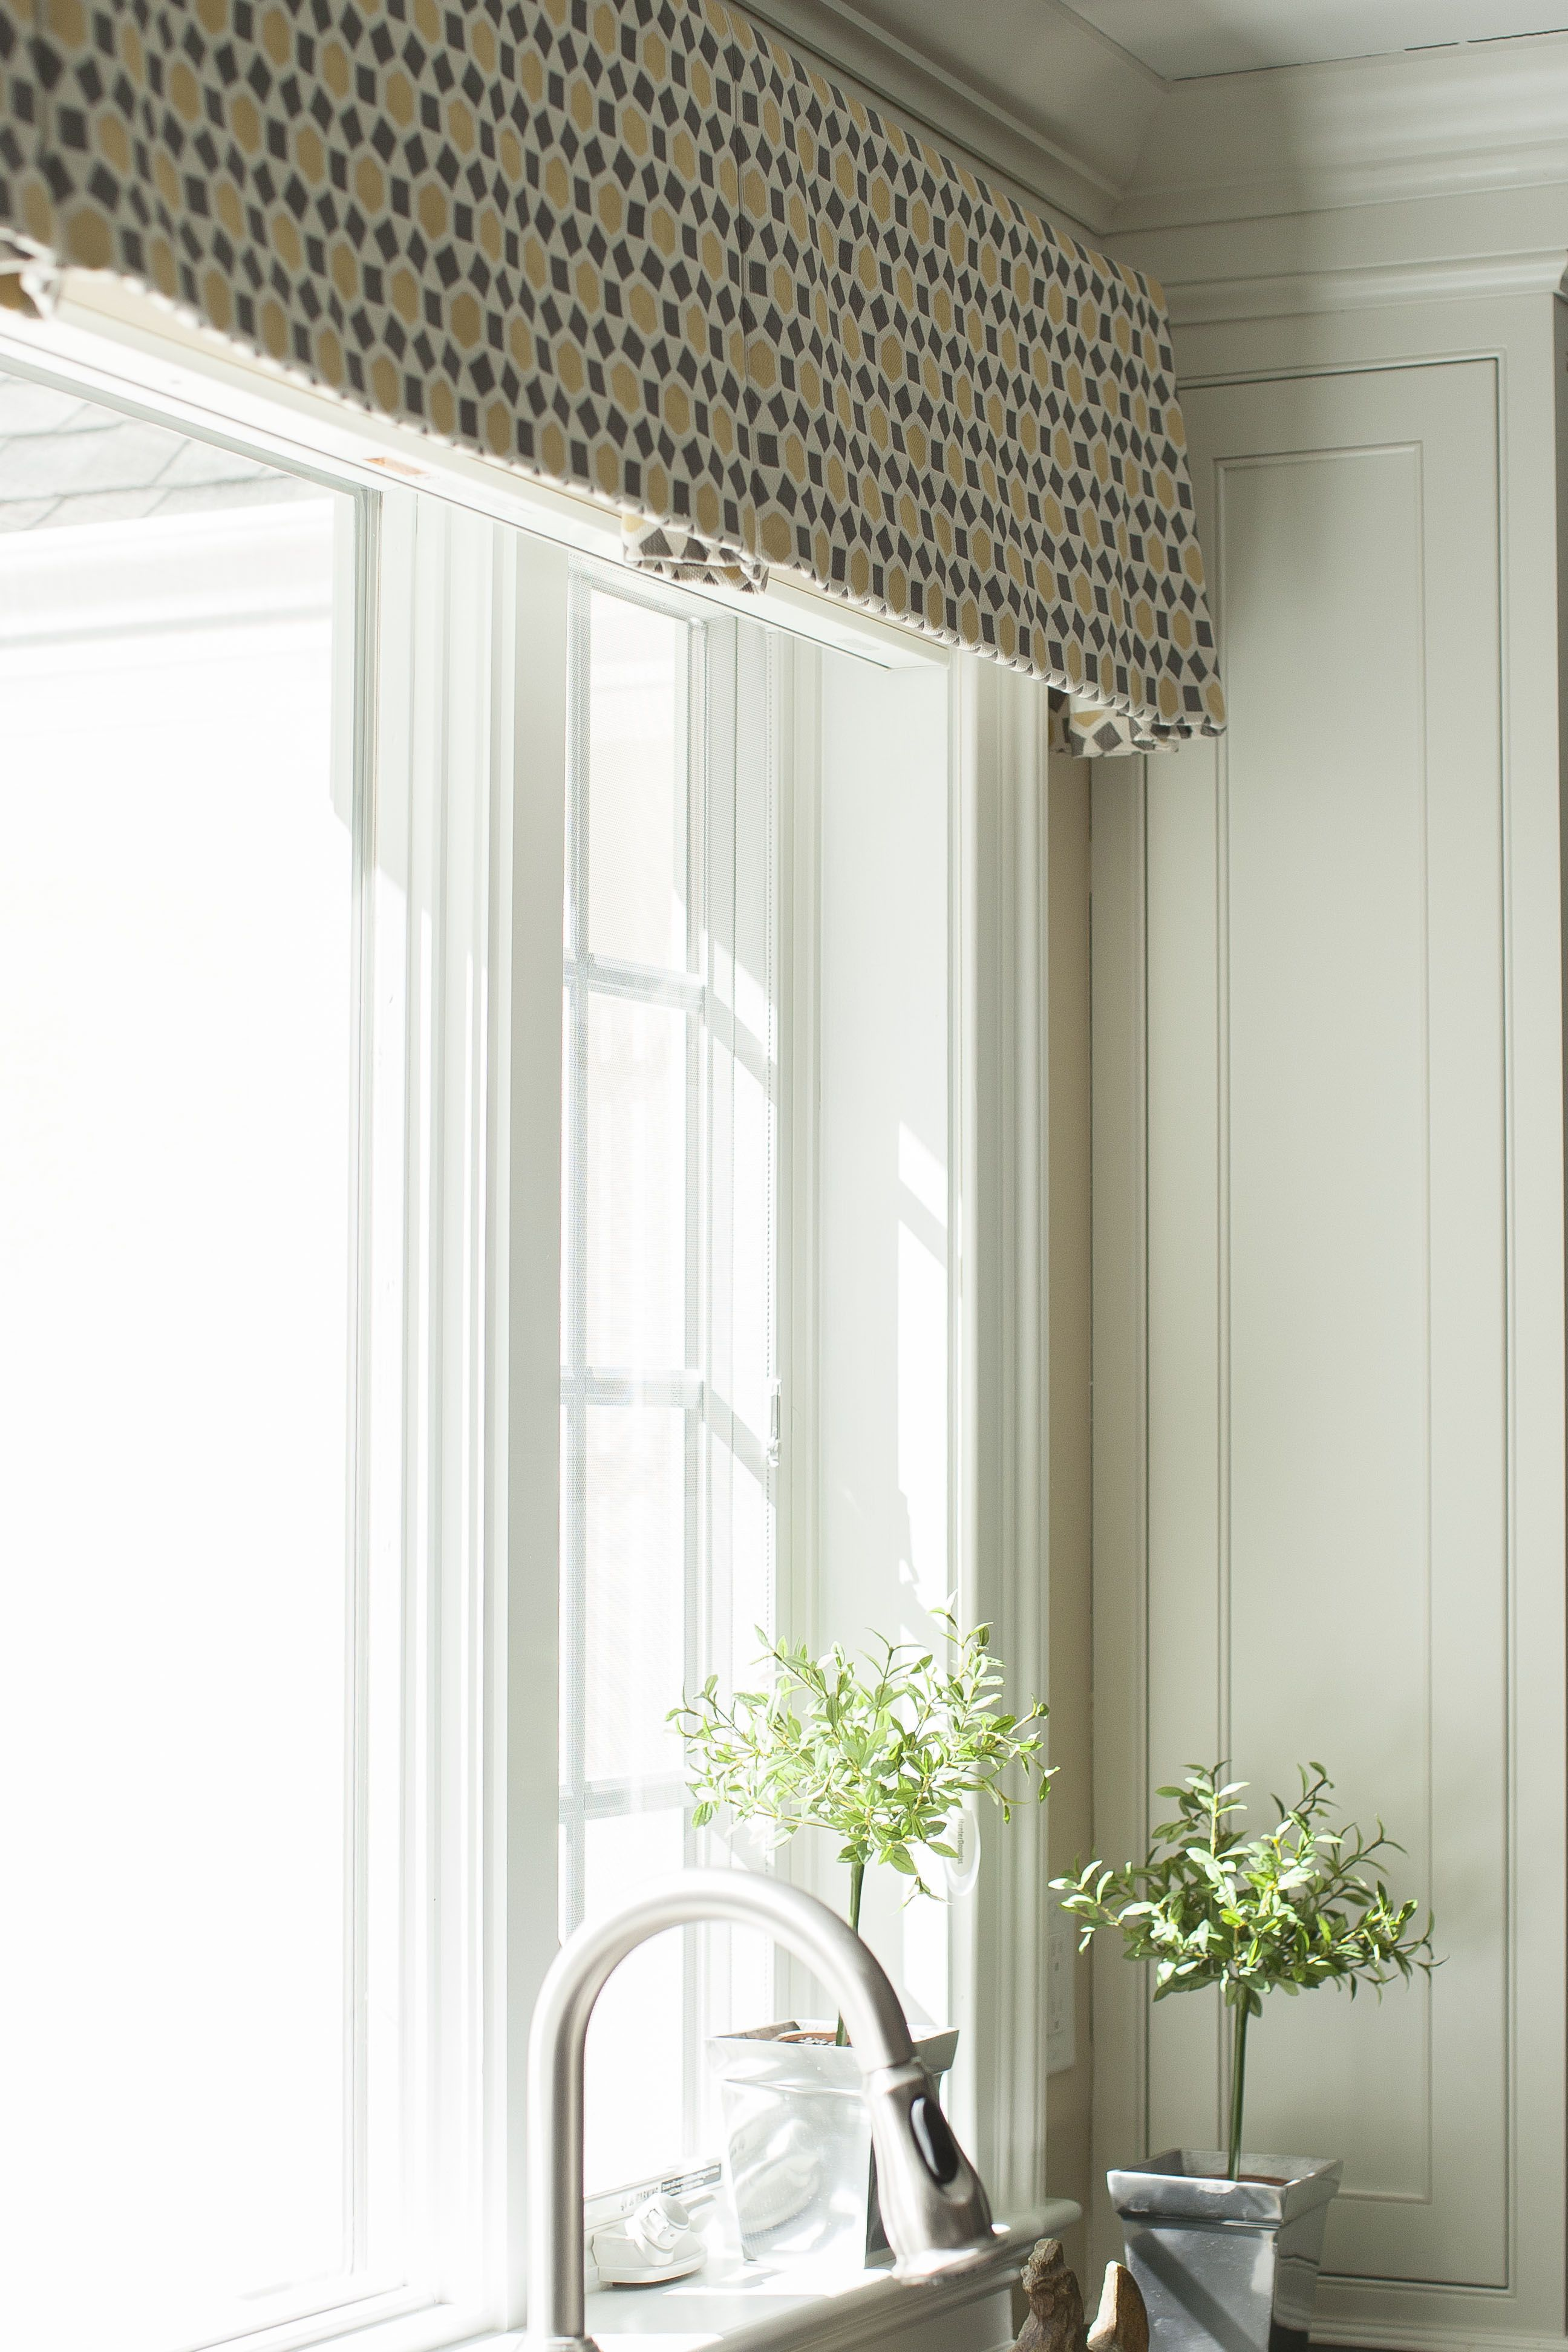 Kitchen window curtain  Bright cheery kitchen window valance in small gray and yellow